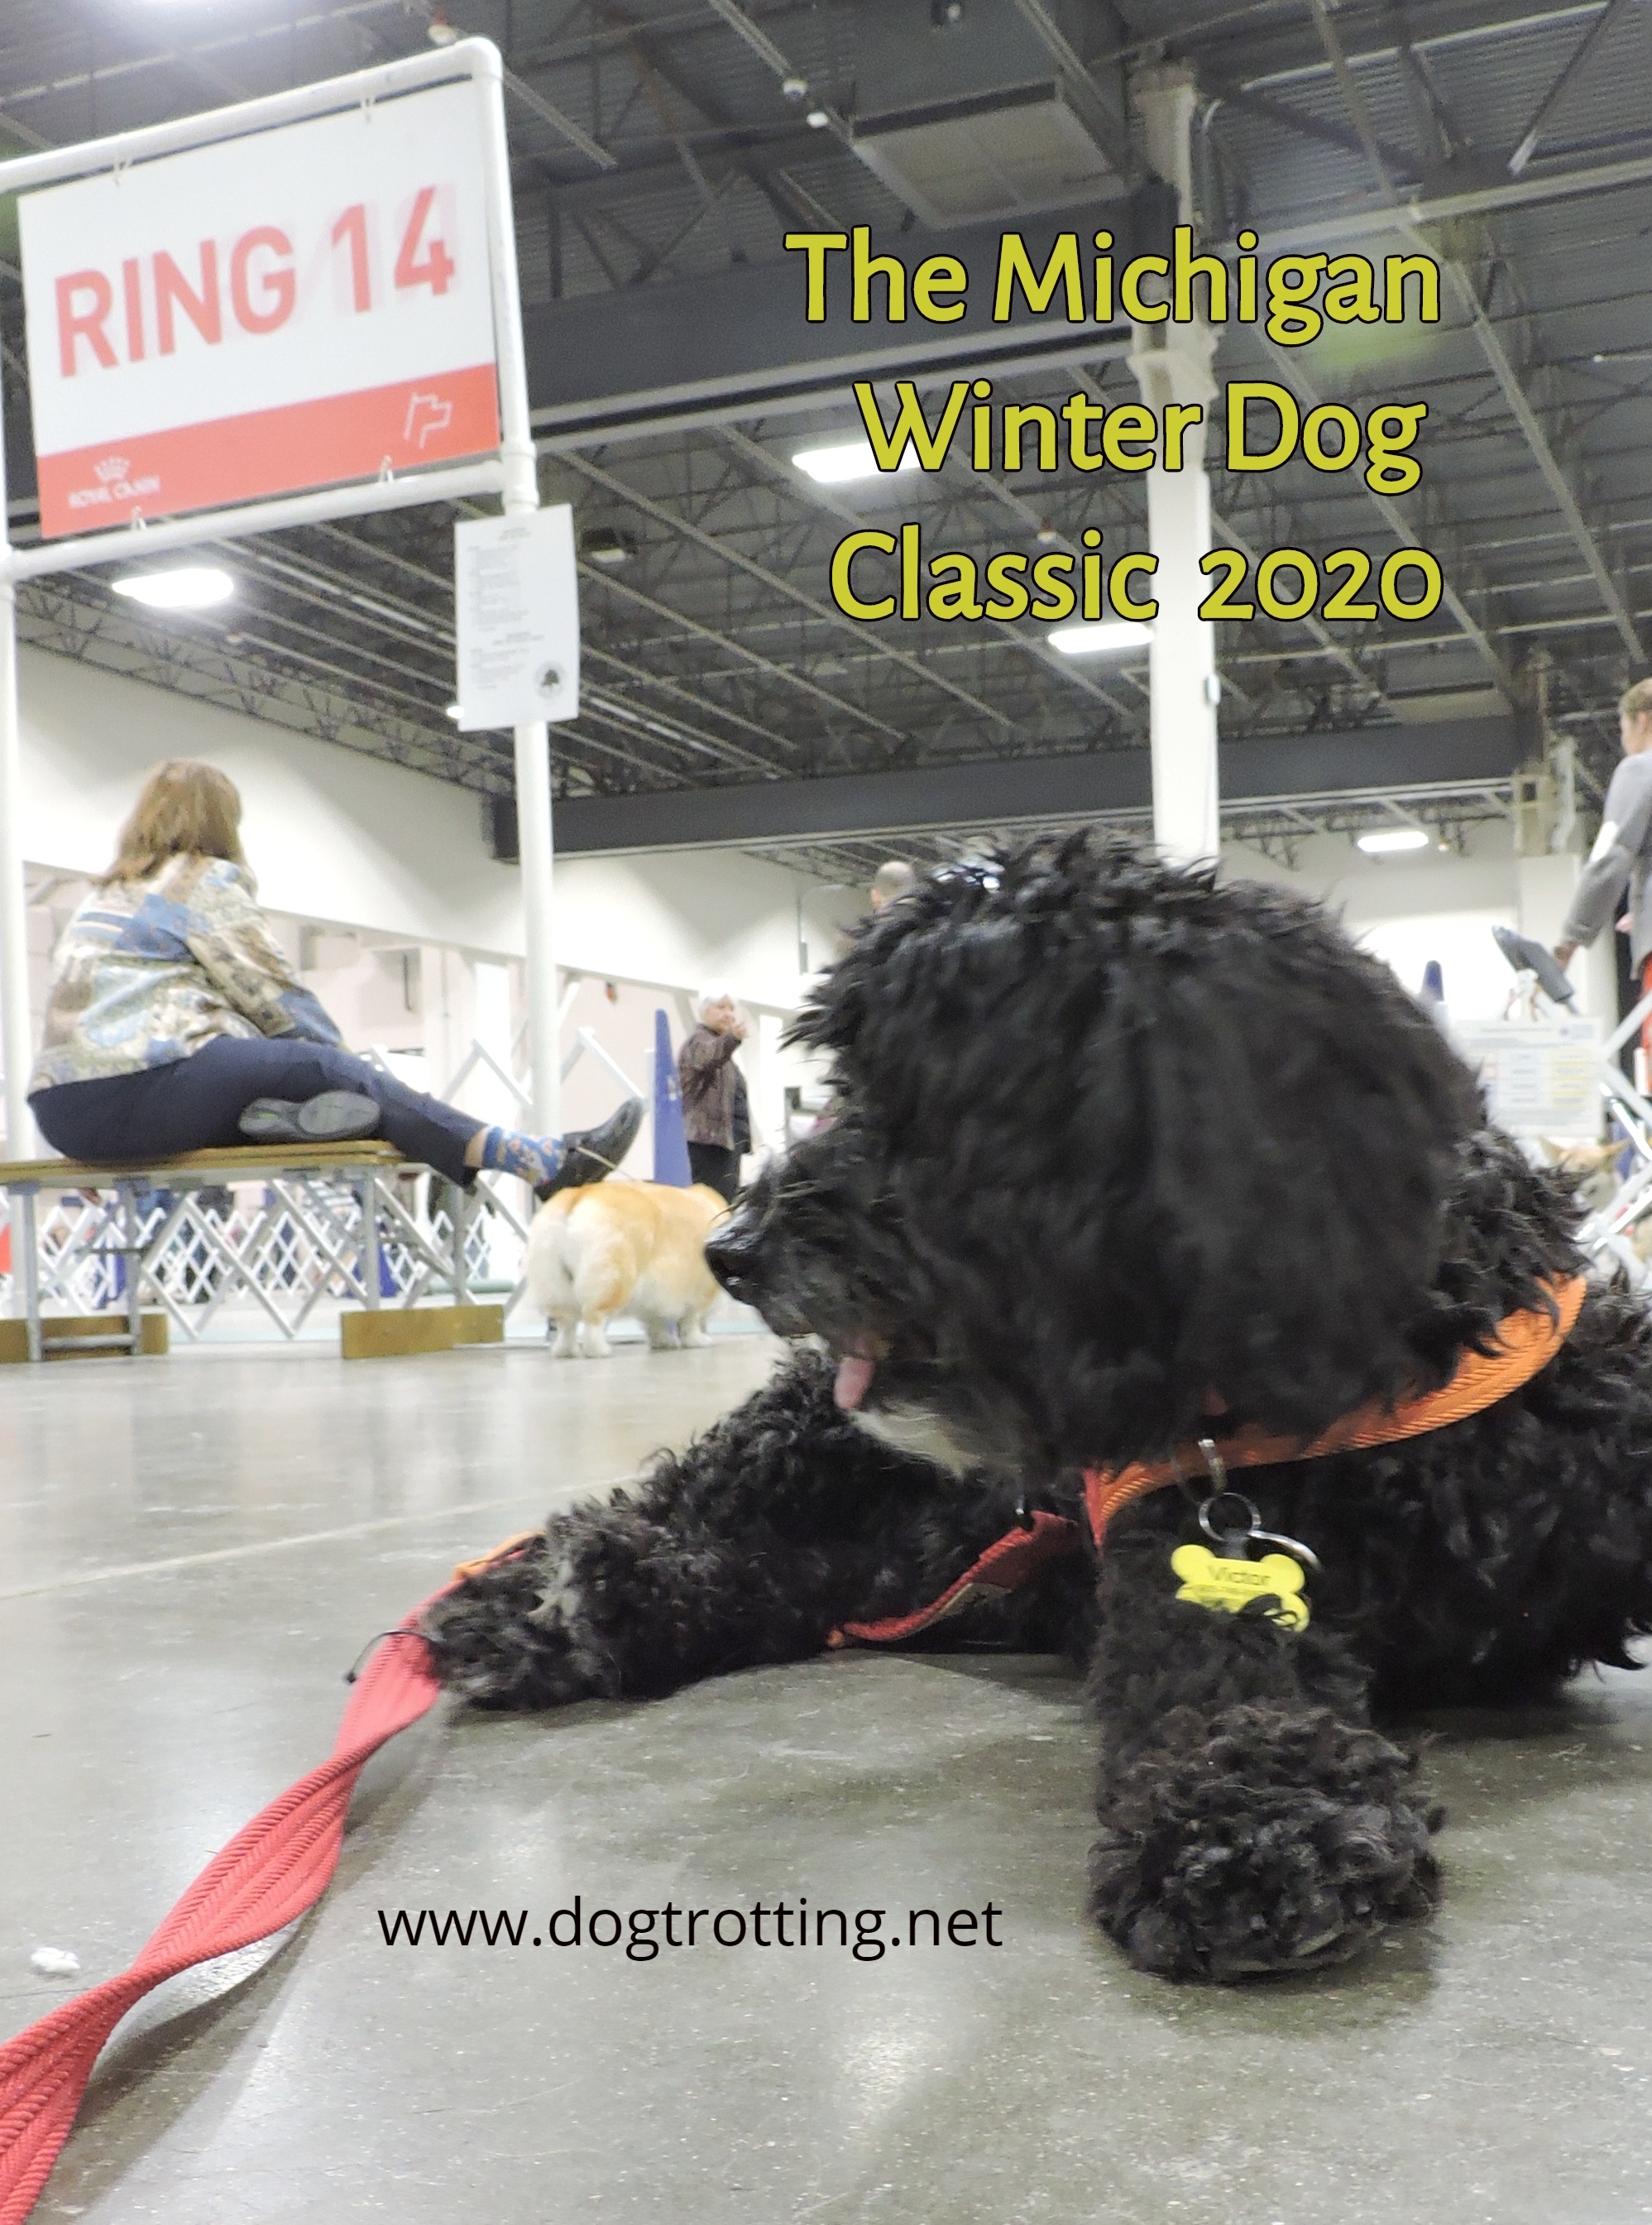 black dog at The Michigan Winter Dog Classic dog show